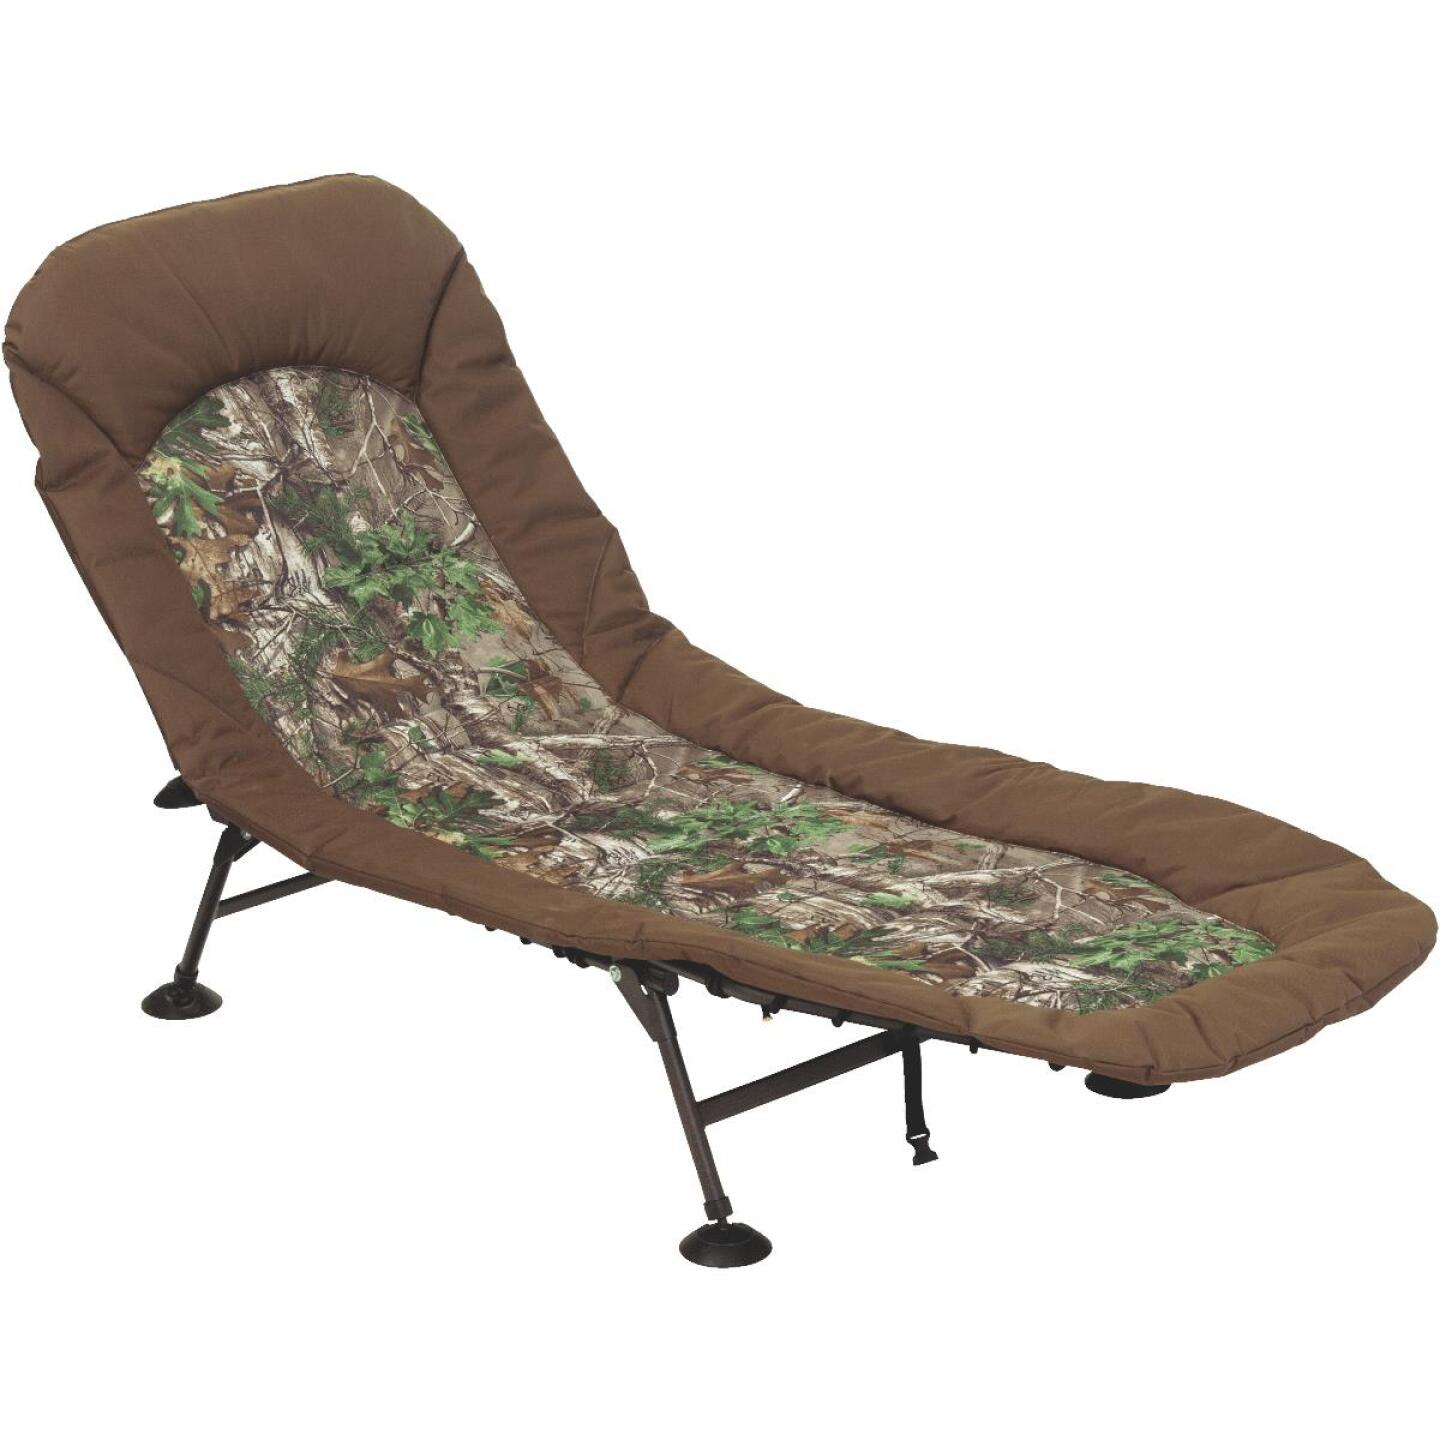 RealTree Chaise Lounge Image 1